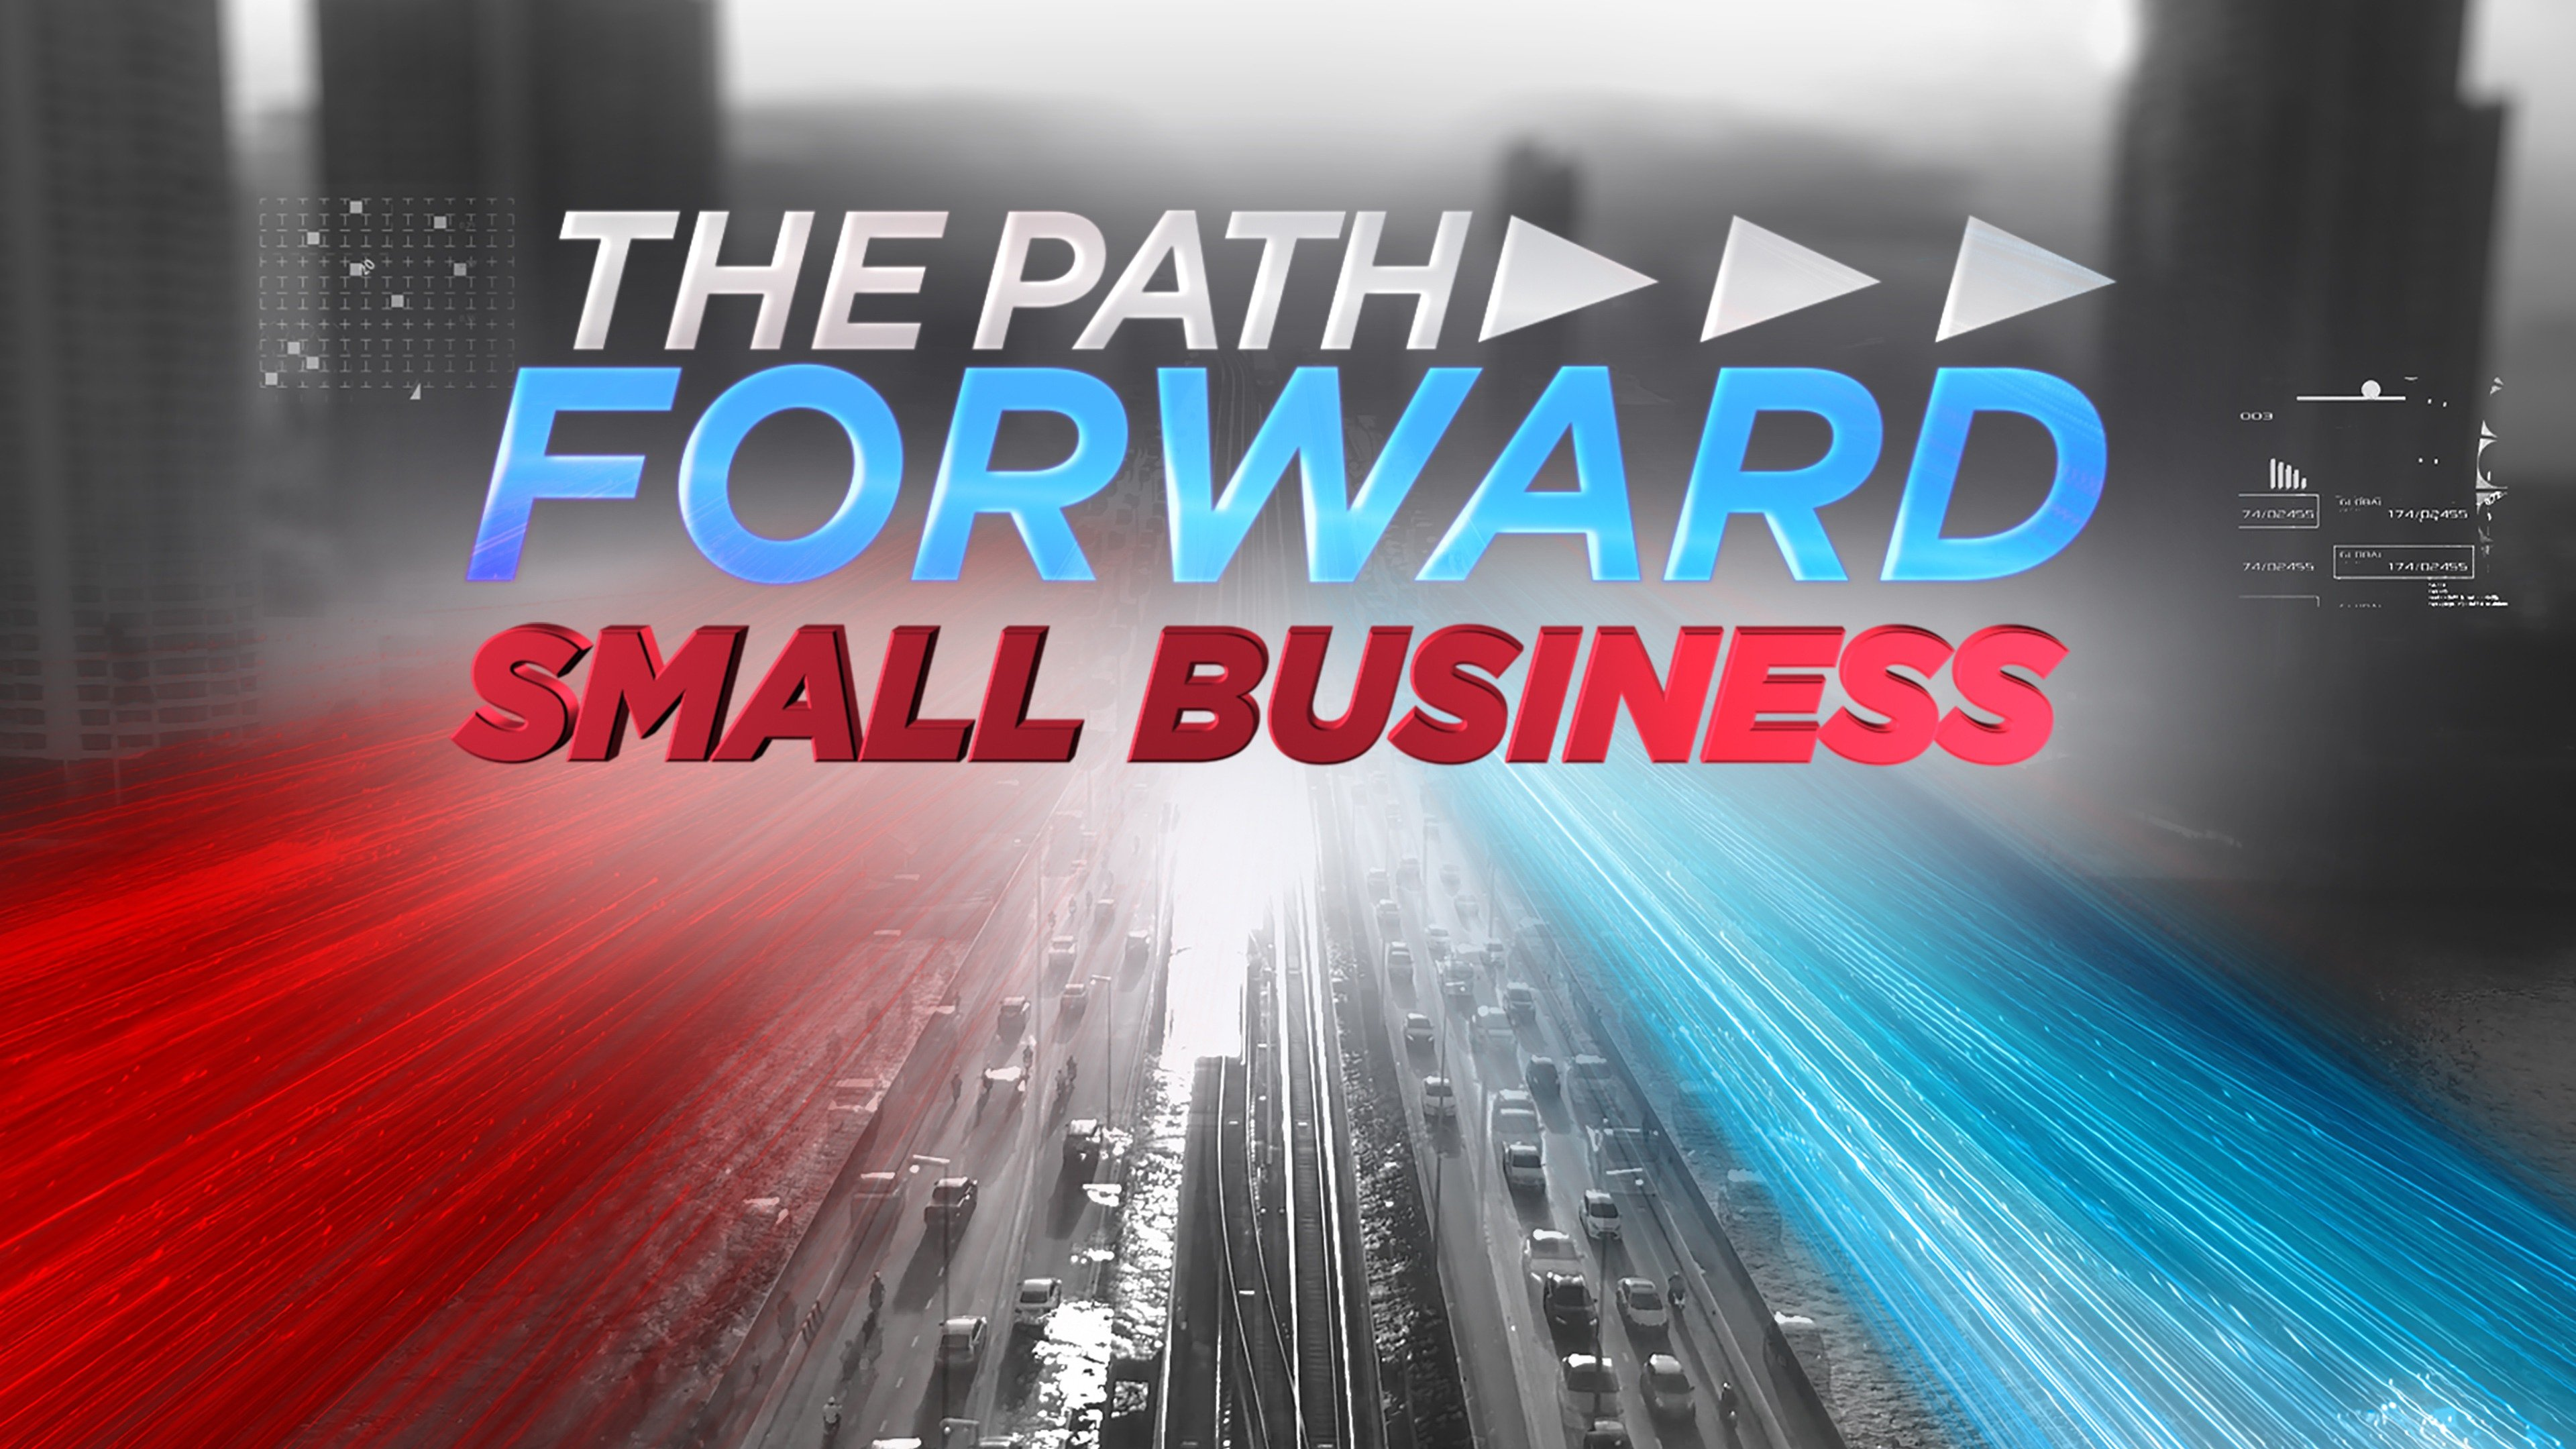 The Path Forward: Small Business